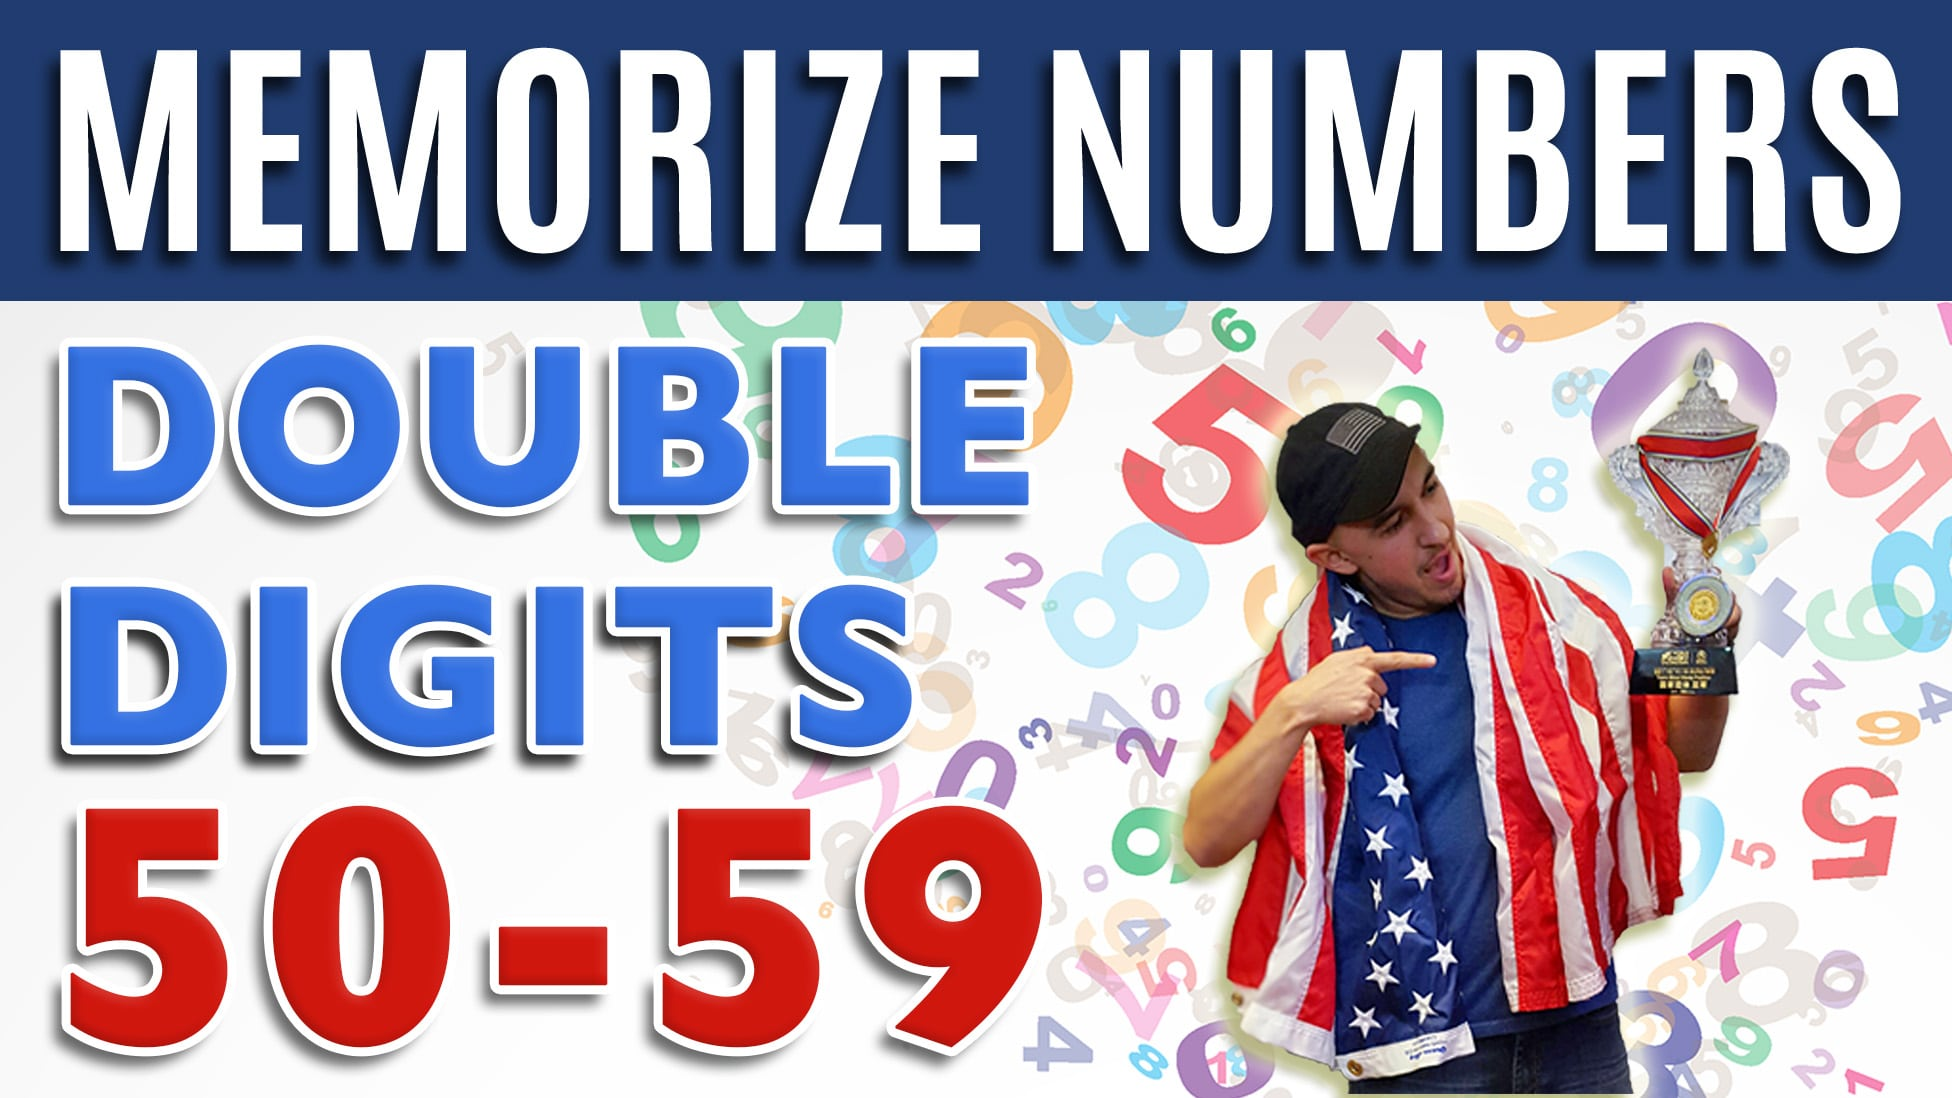 How to Memorize Numbers 50-59